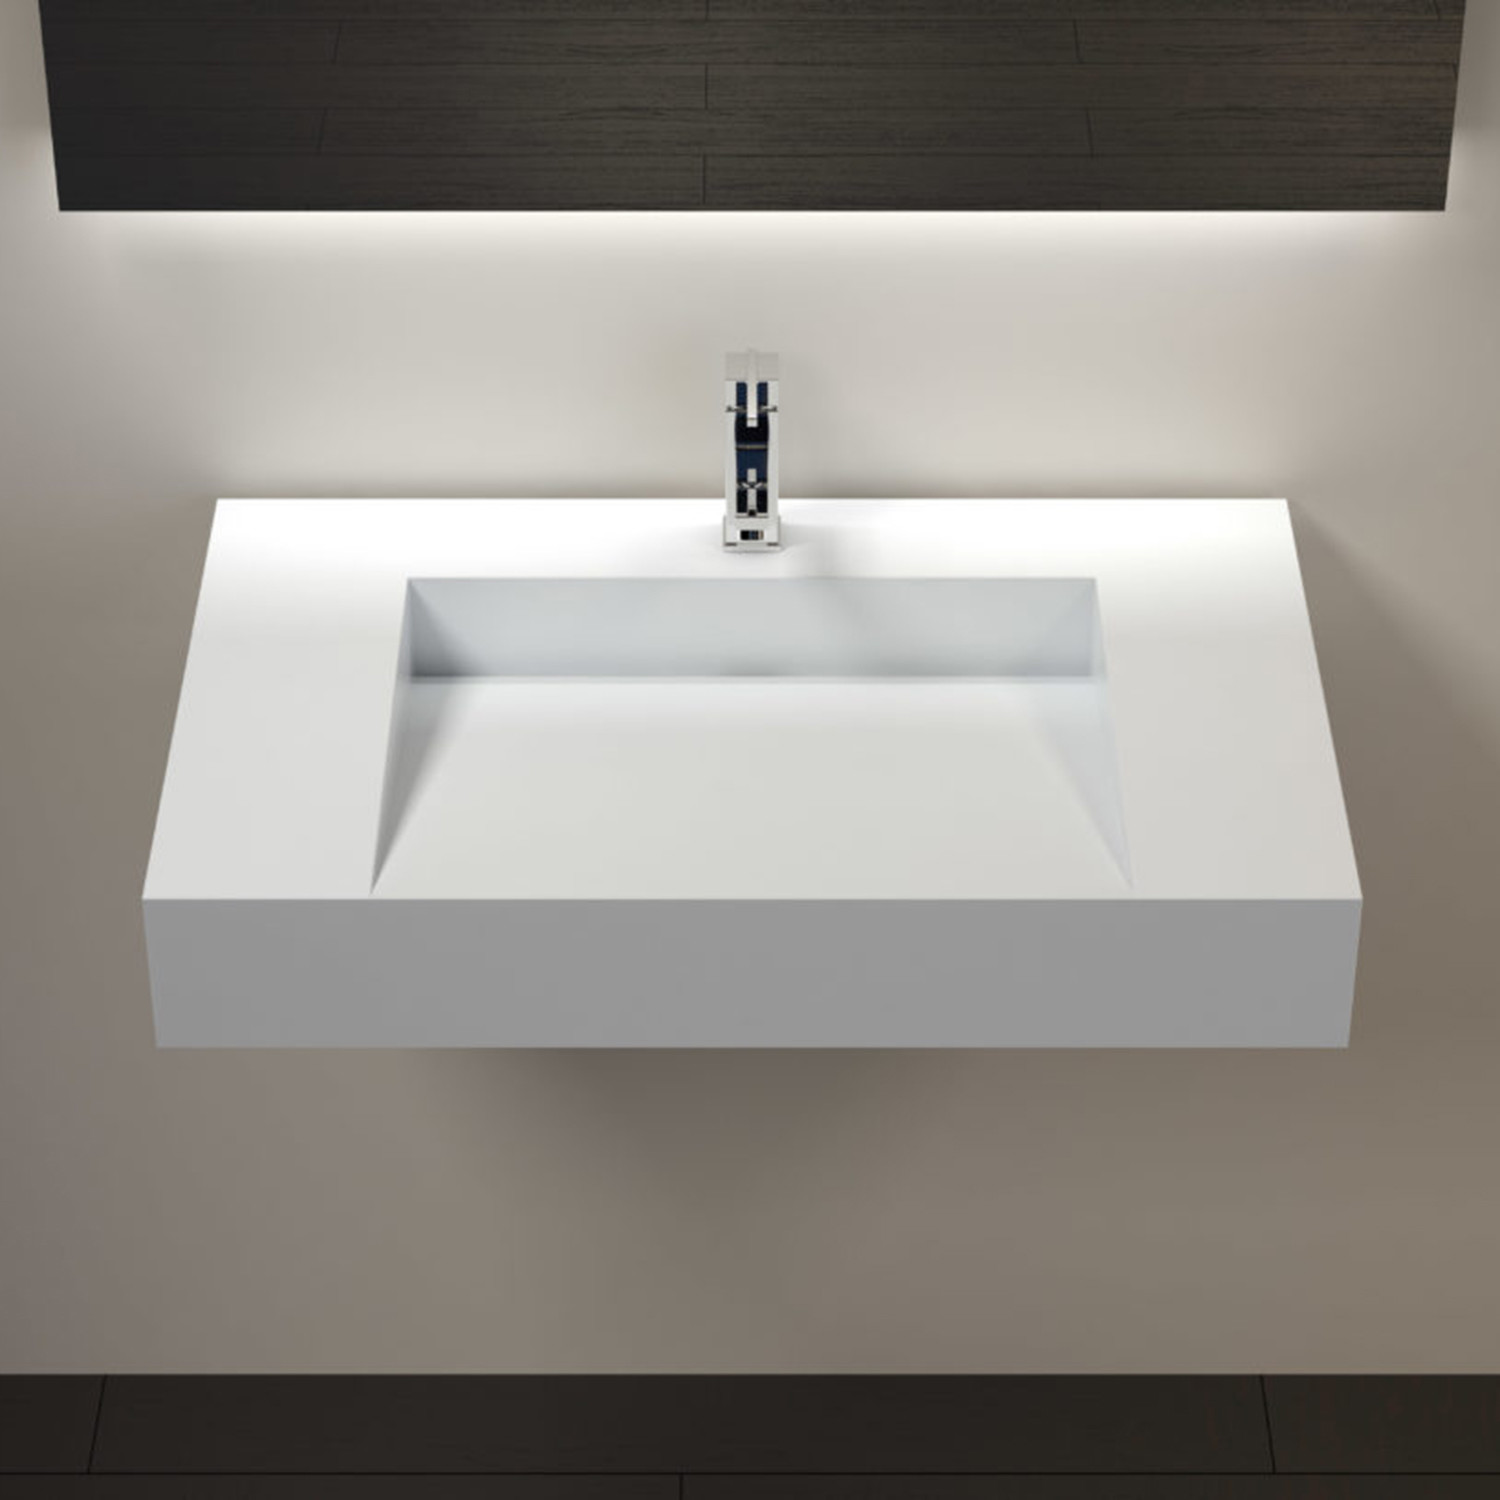 Wall Mounted Sink Wt 04 D Glossy